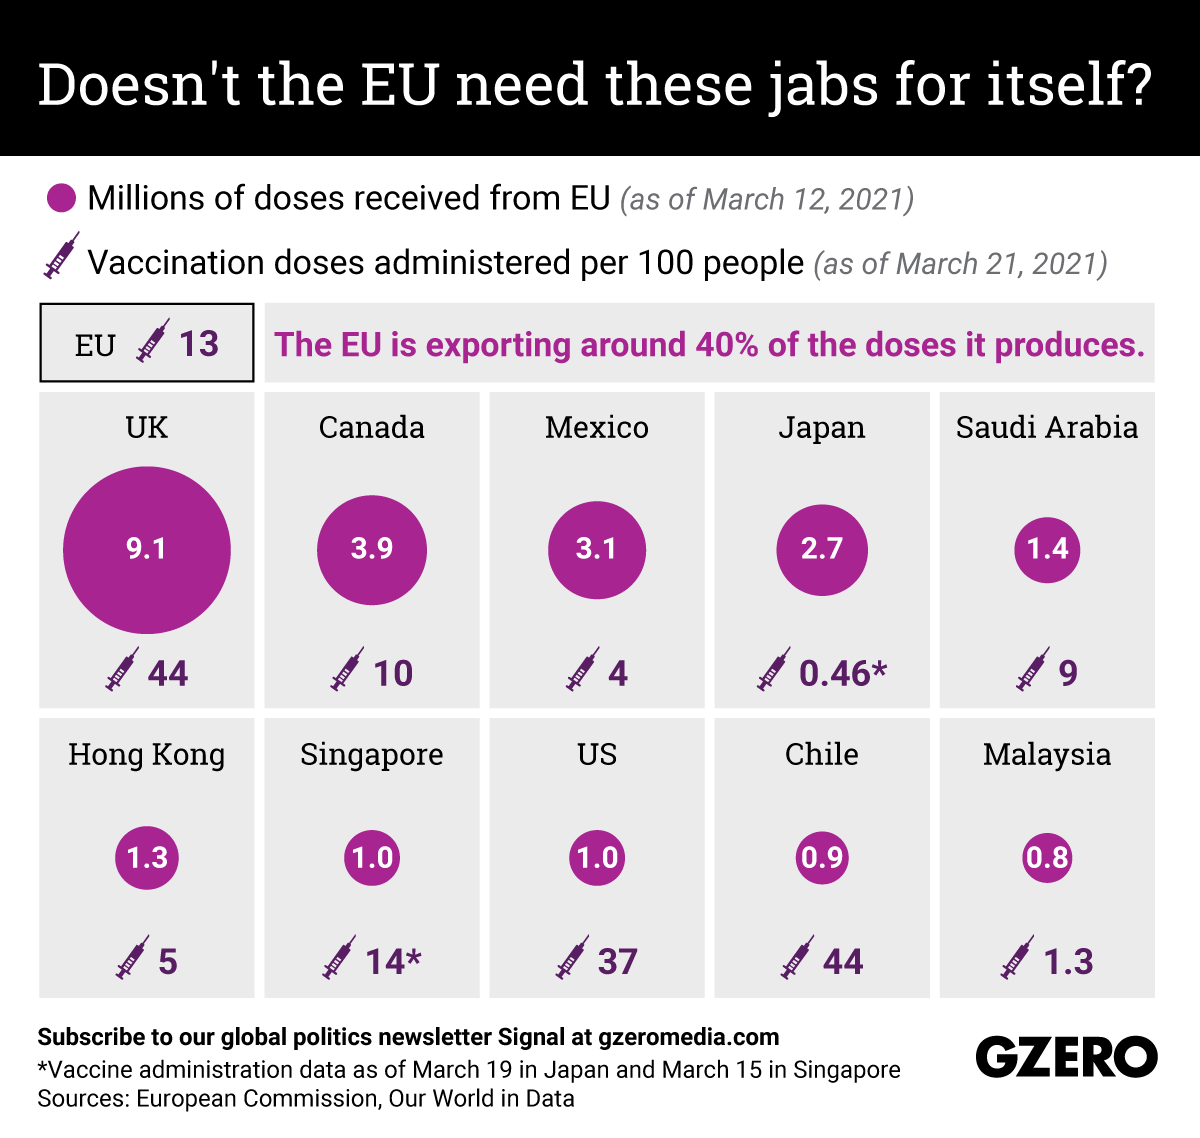 The Graphic Truth: Doesn't the EU need these jabs for itself?